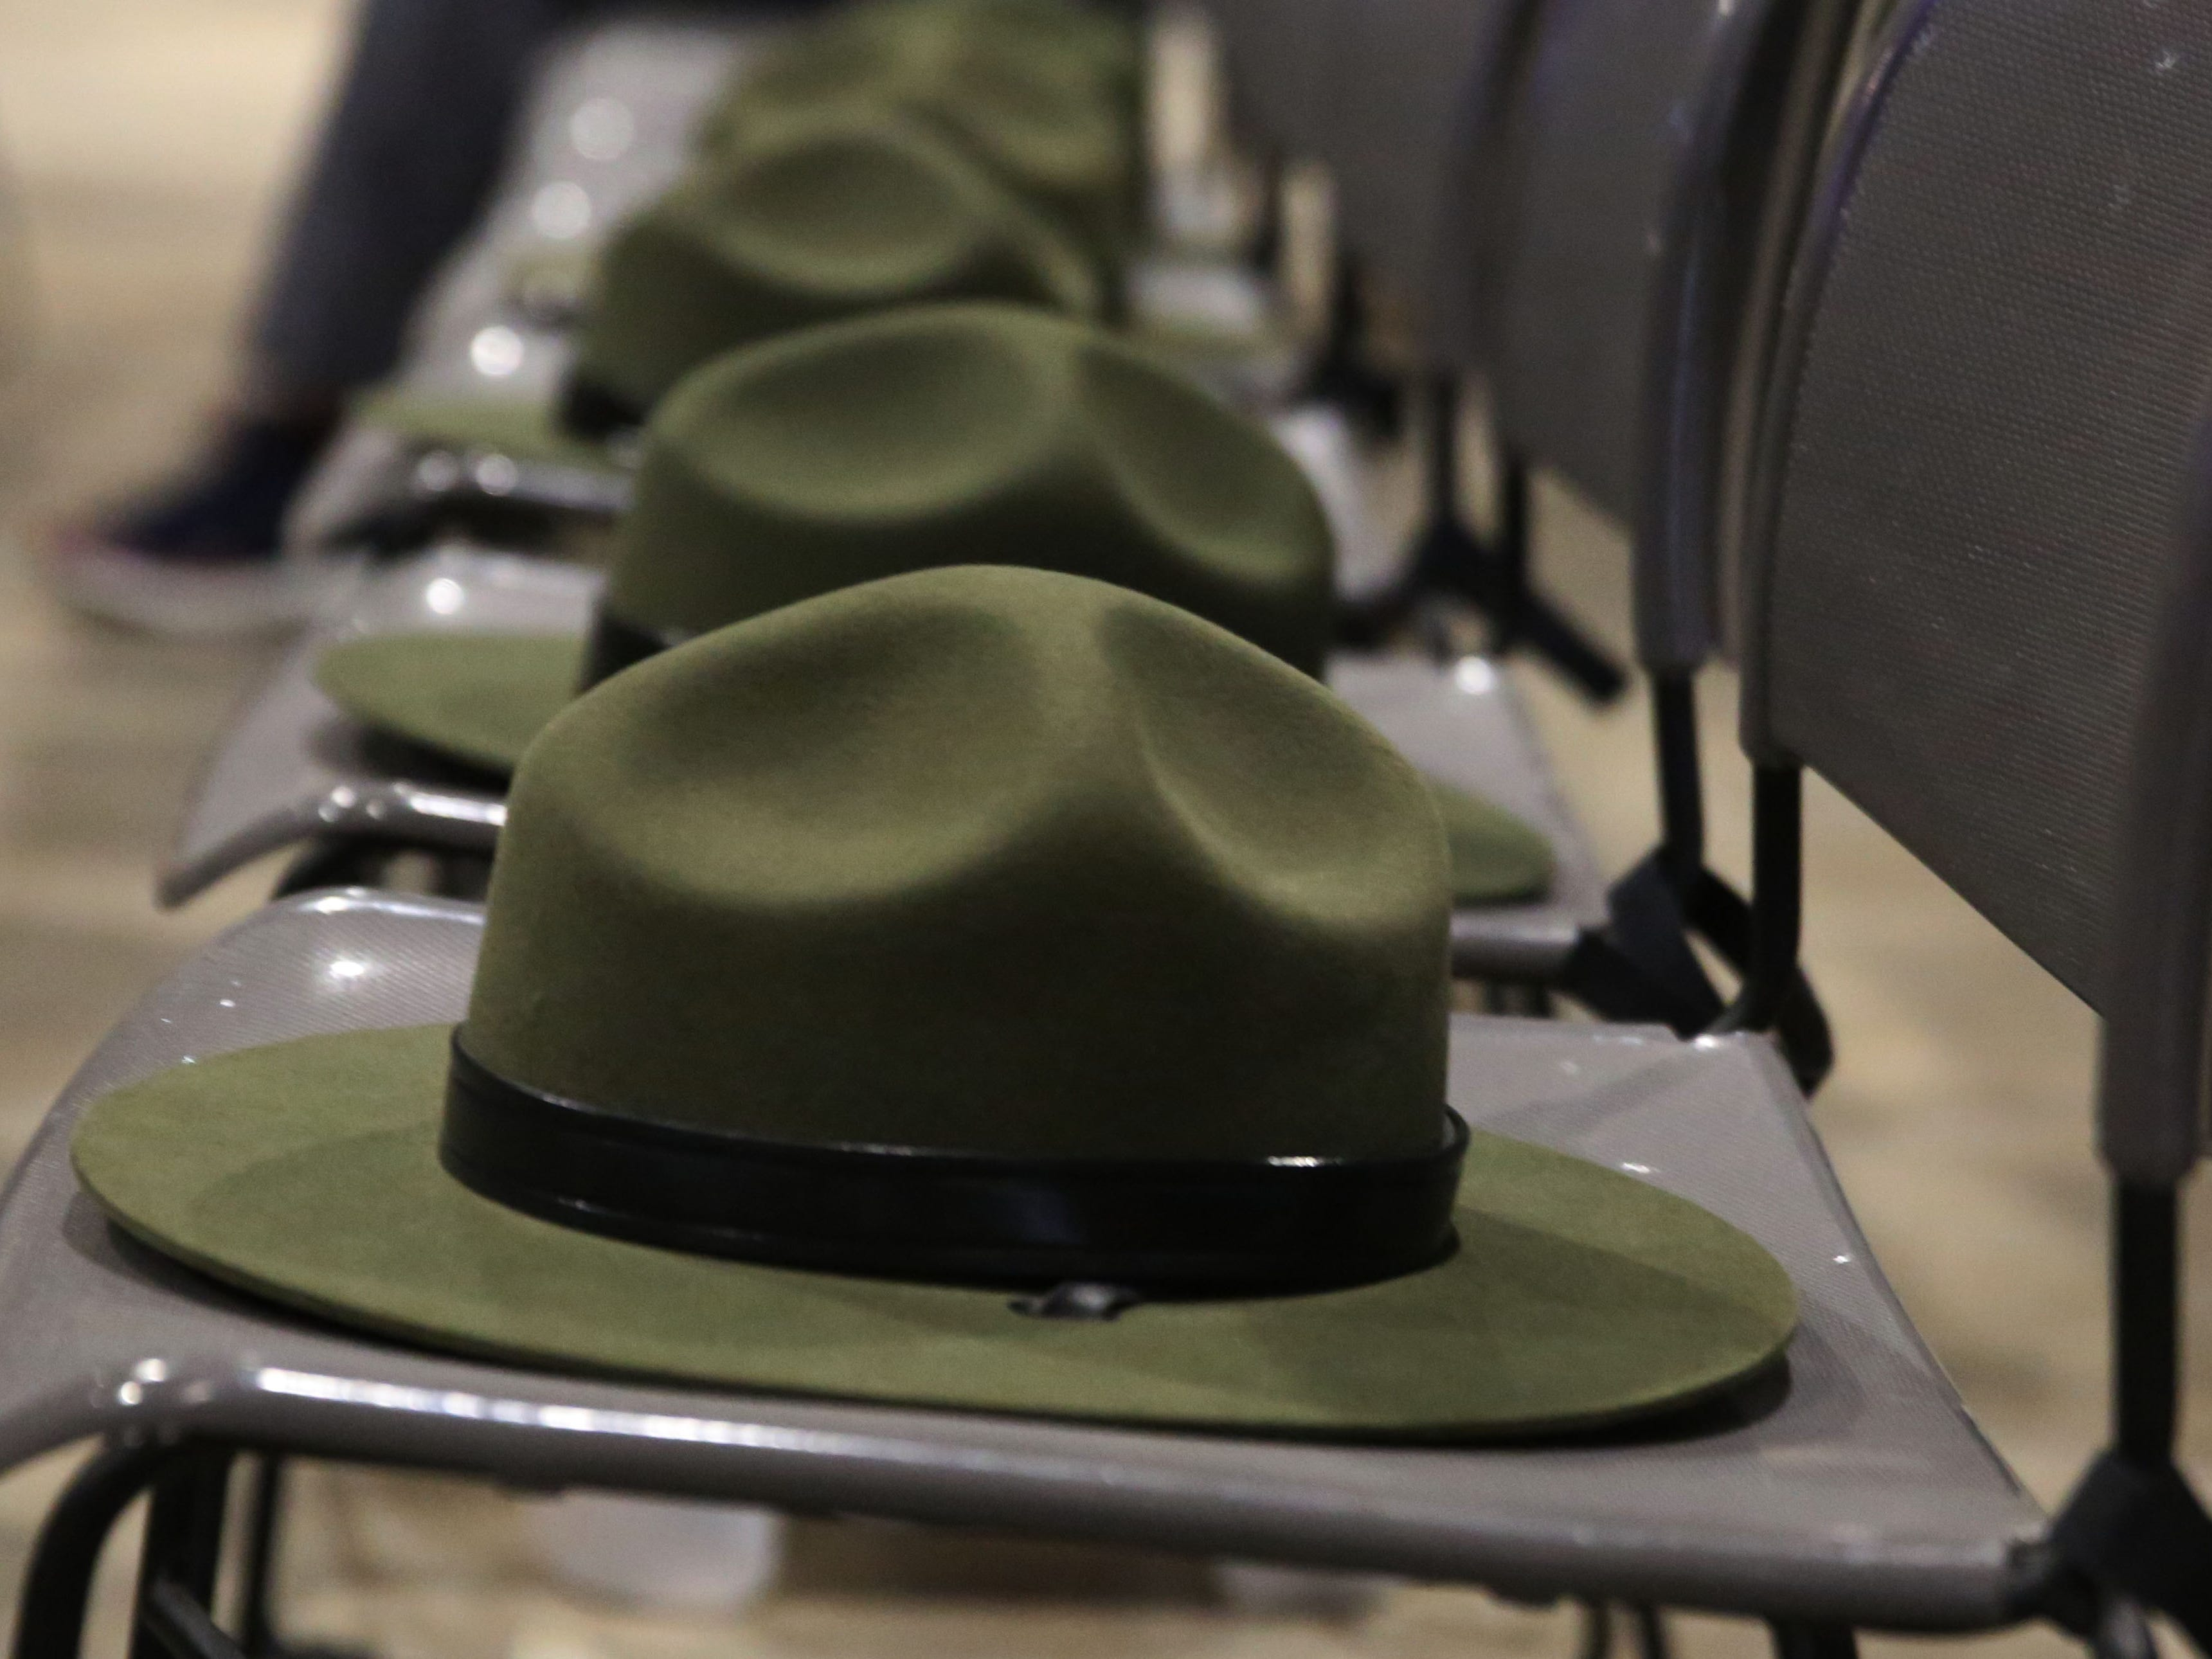 Border Patrol hats line the seats Tuesday May 7, 2019, at Mesilla Park Community Church, during the Fallen Officer Memorial.